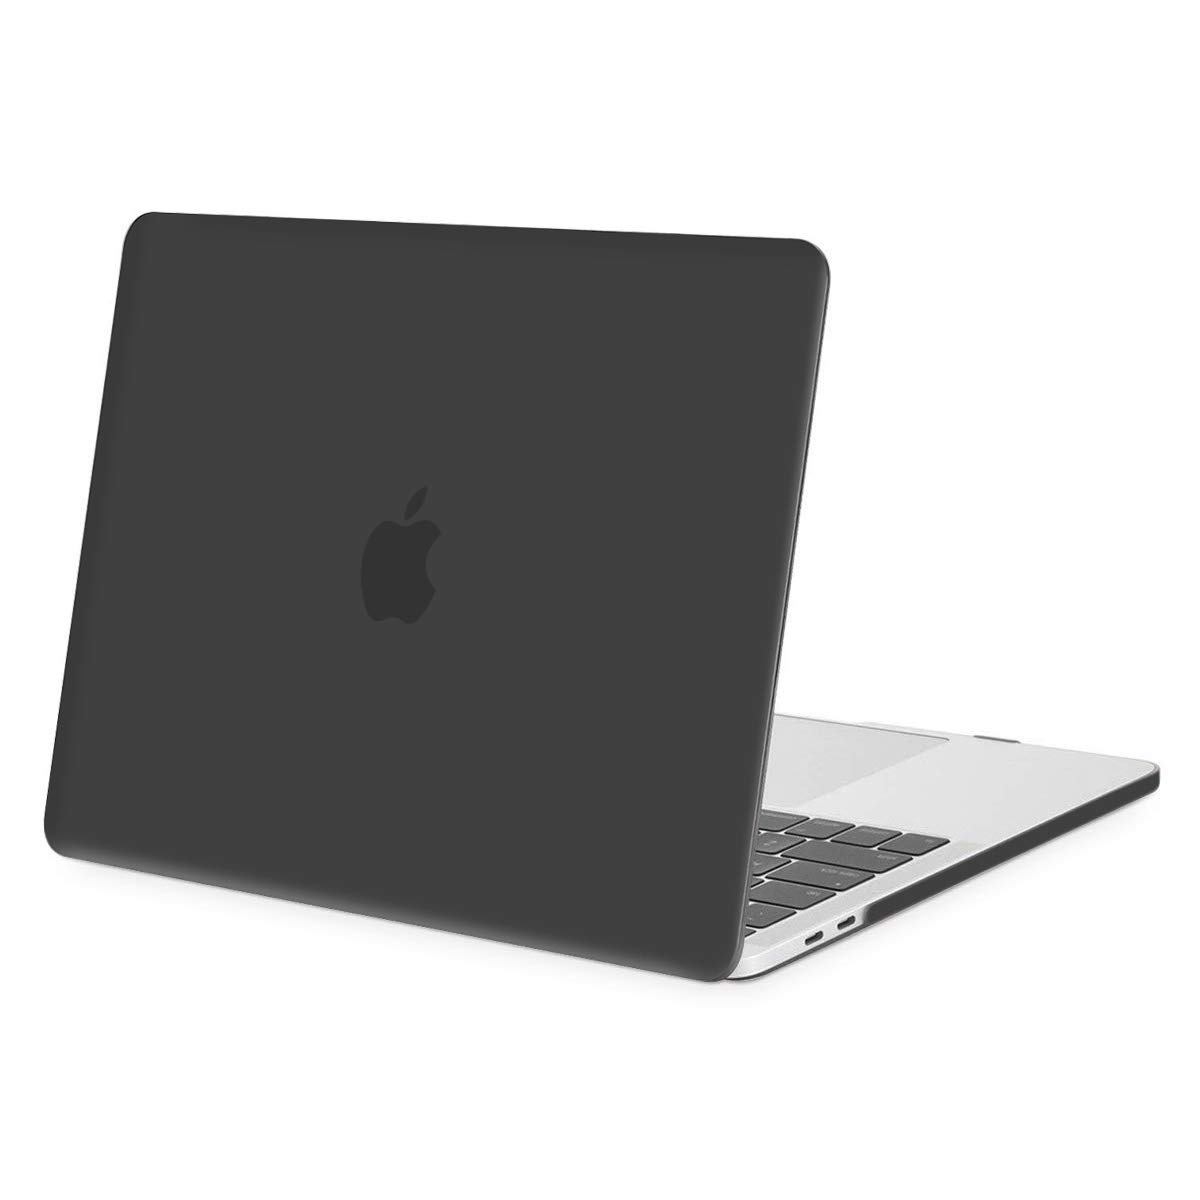 Wine Red MOSISO MacBook Pro 13 Case 2019 2018 2017 2016 Release A2159 A1989 A1706 A1708 Plastic Hard Case Shell Cover Compatible Newest Macbook Pro 13 Inch with//without Touch Bar and Touch ID